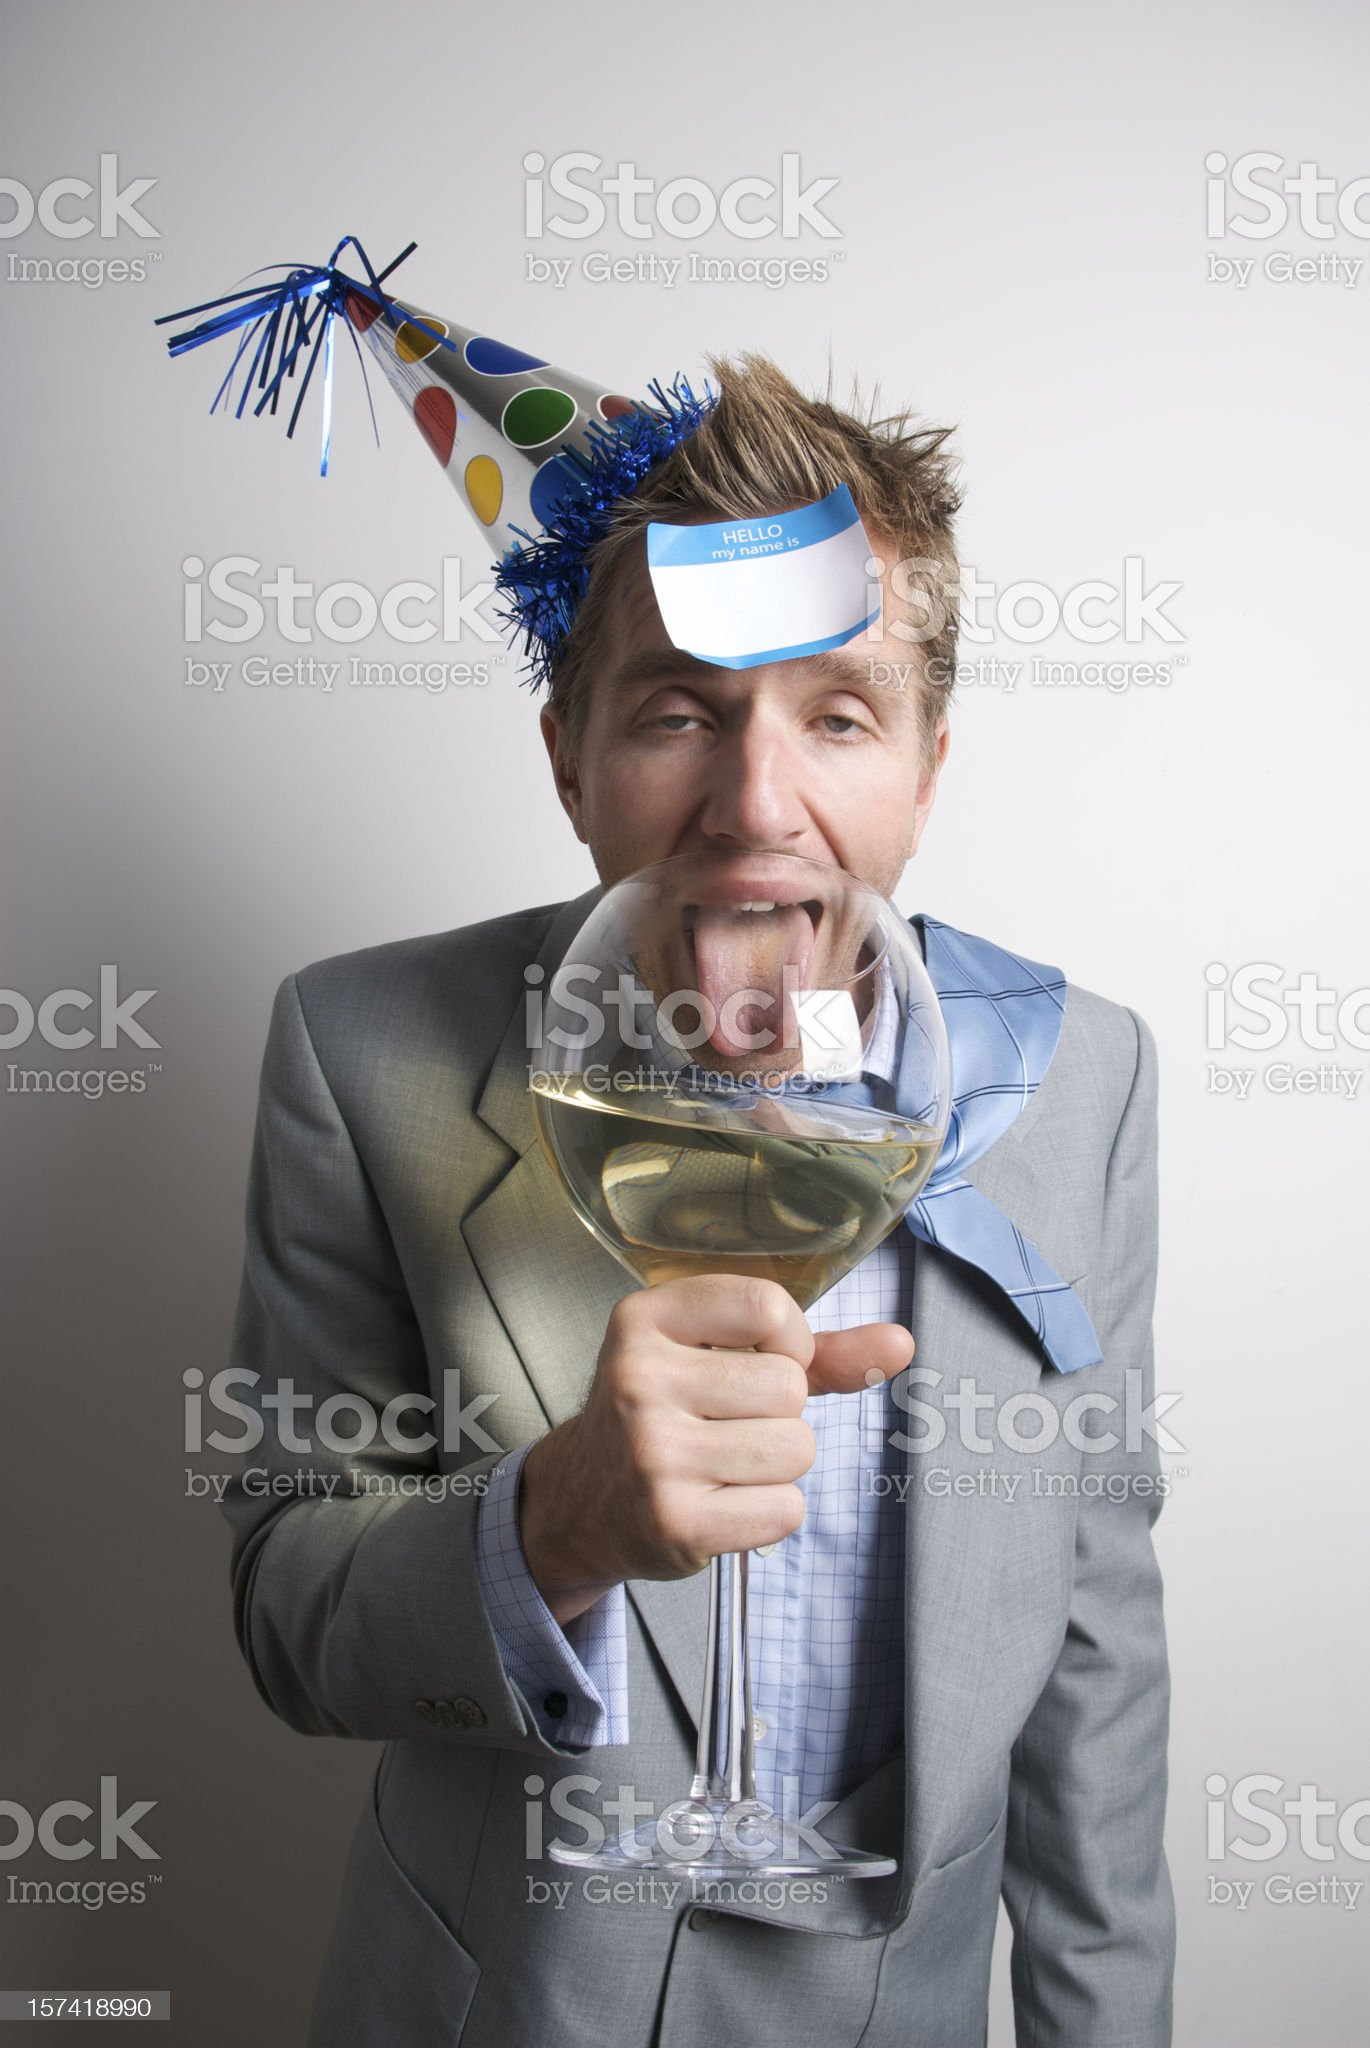 Drunk Businessman Office Worker Drinking with Name Tag royalty-free stock photo